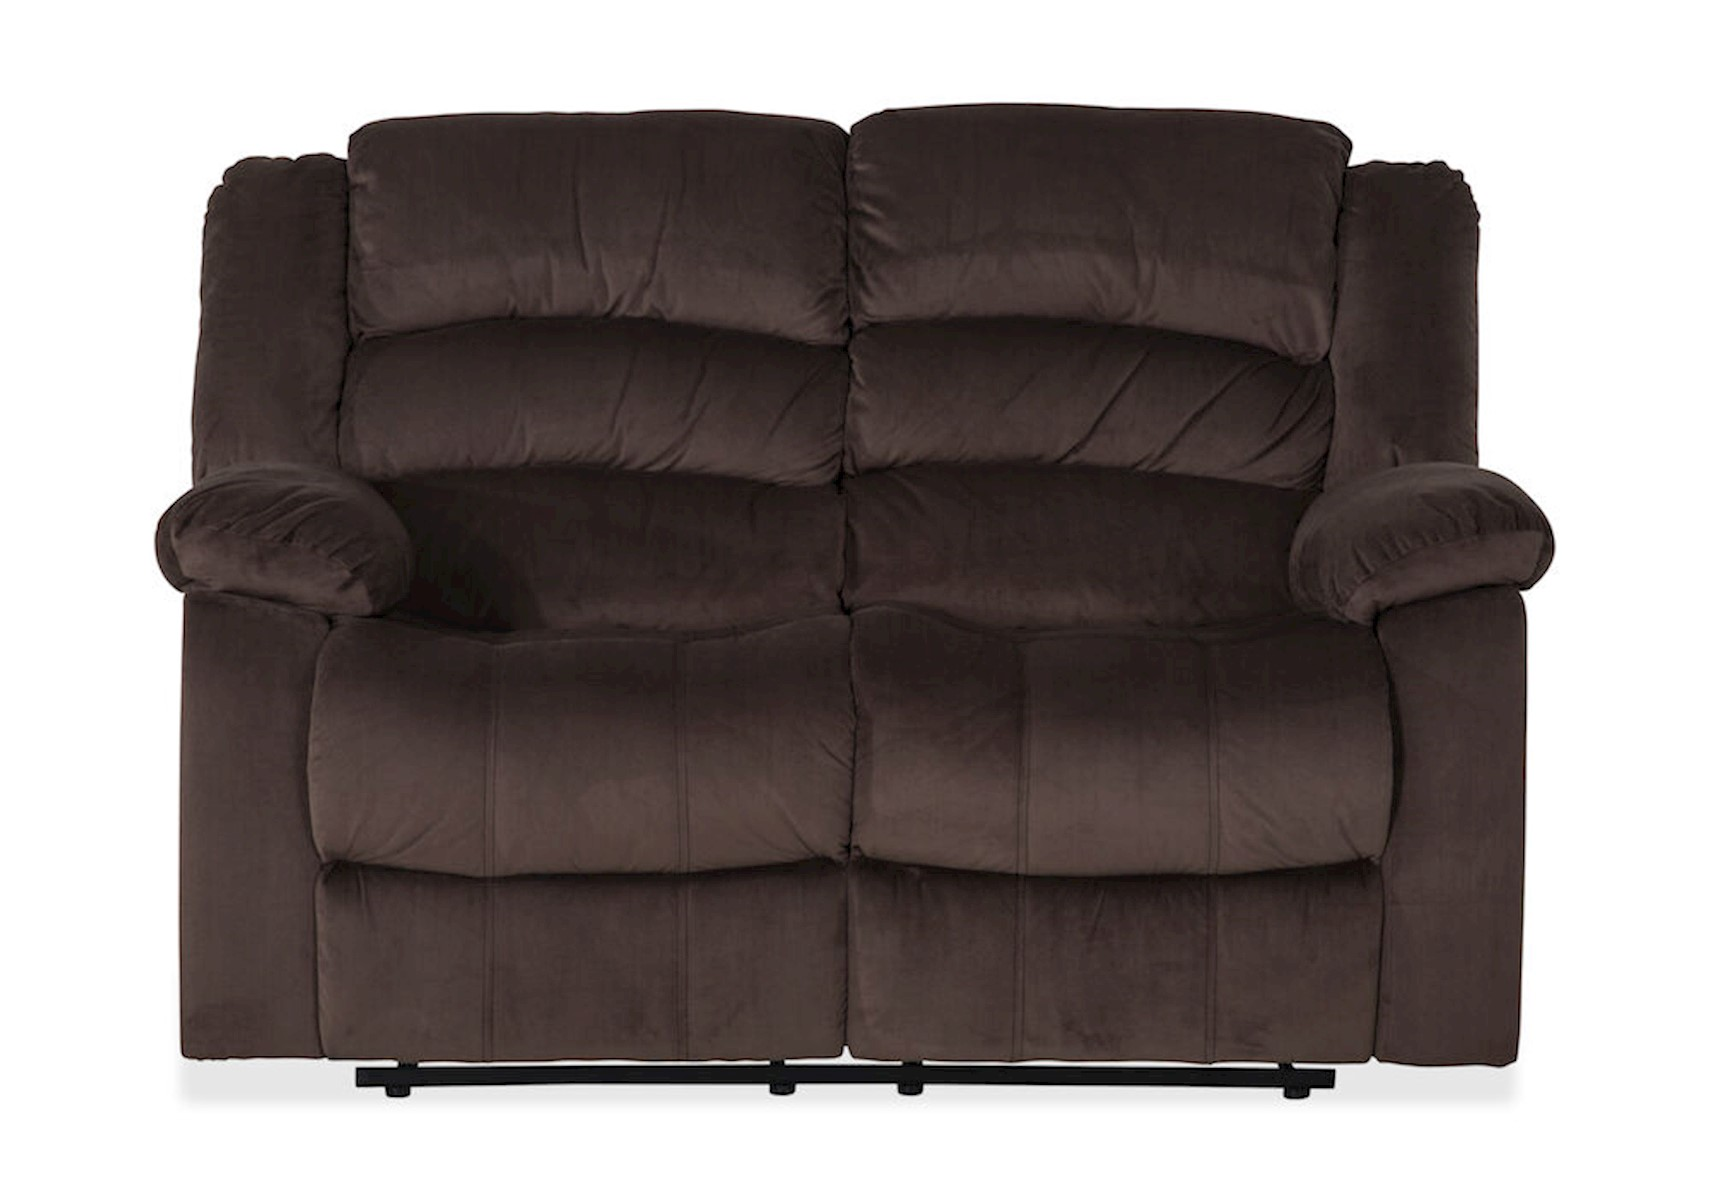 greenville ii dual reclining loveseat